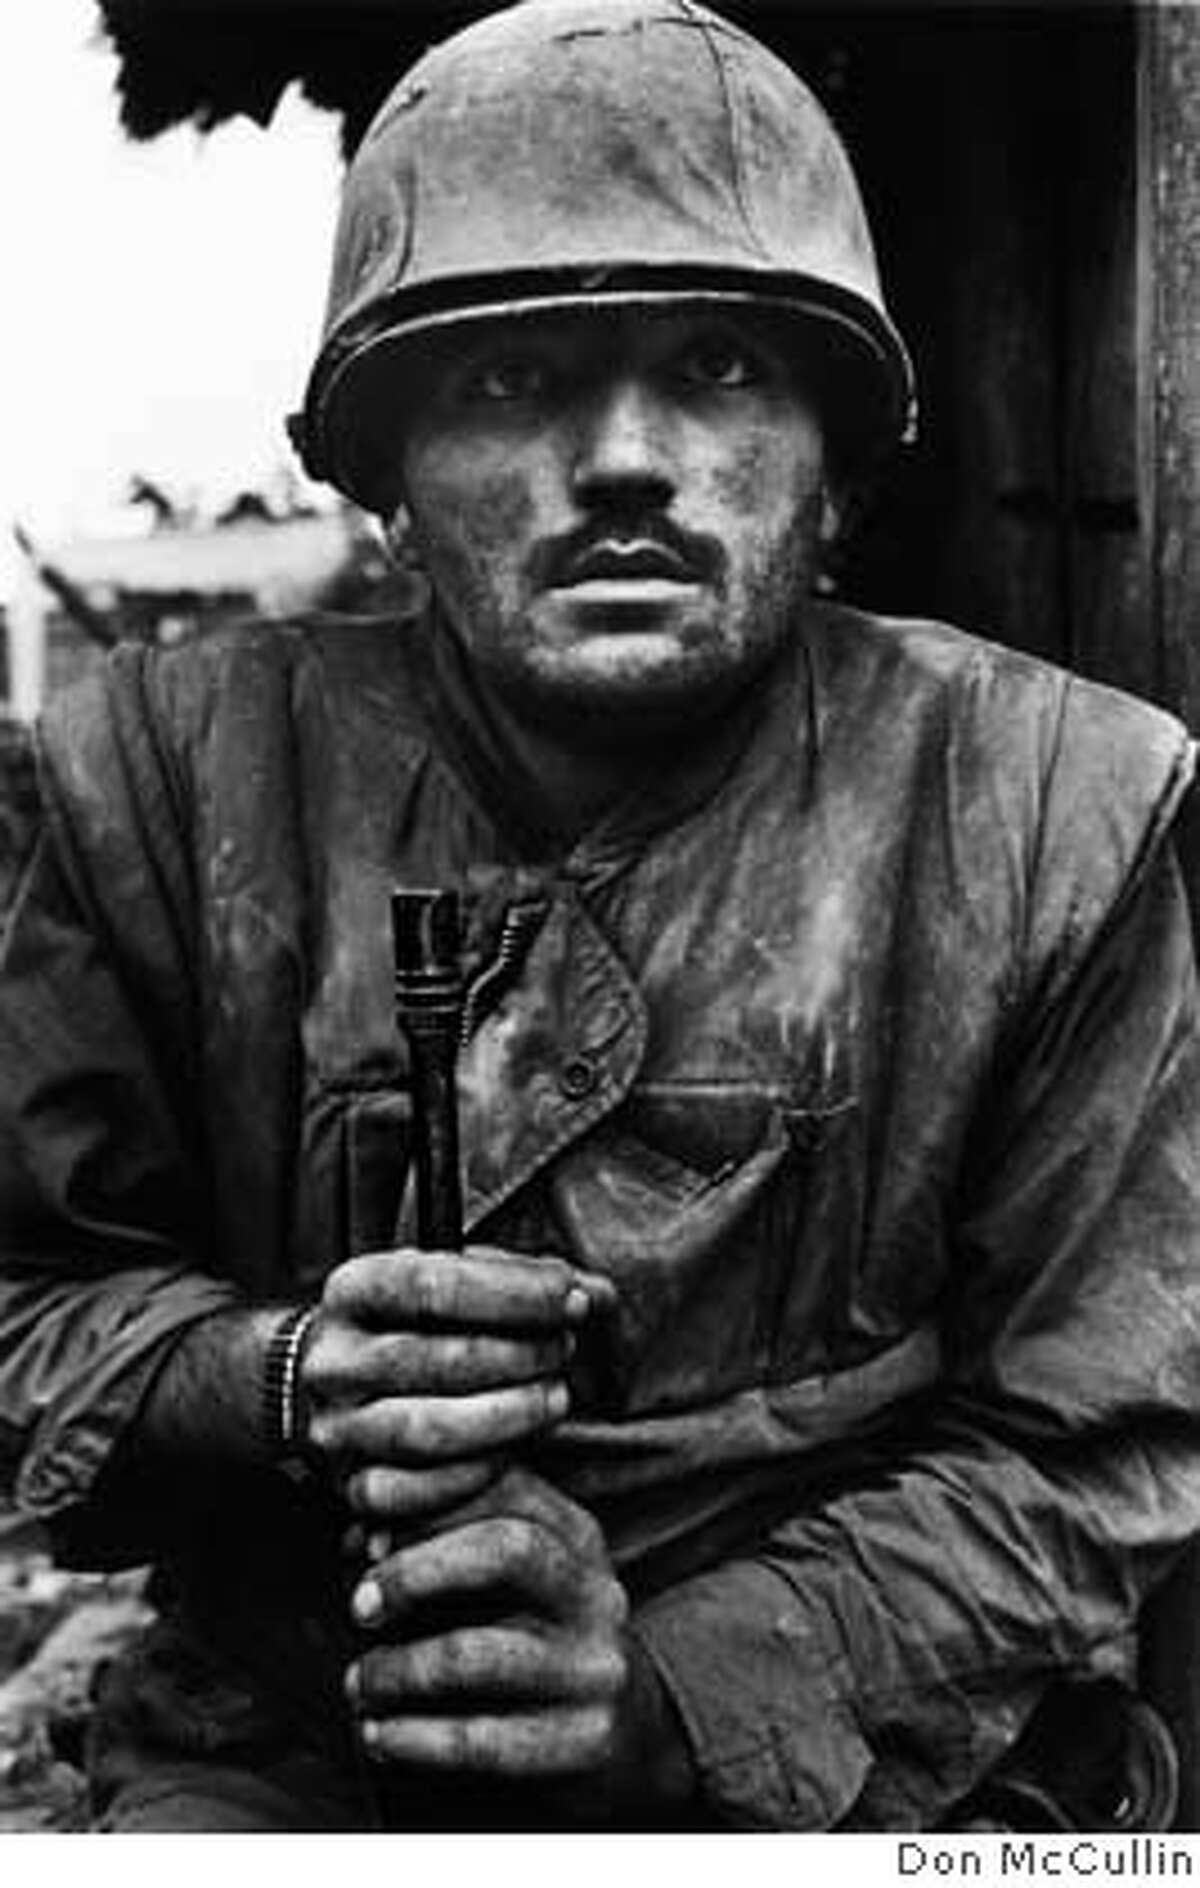 Shell-shocked U.S. Marine during Tet offensive, The Citadel, battle of Hu�, South Vietnam, February 1968 Don McCullin � Don McCULLIN / CONTACT Press Images